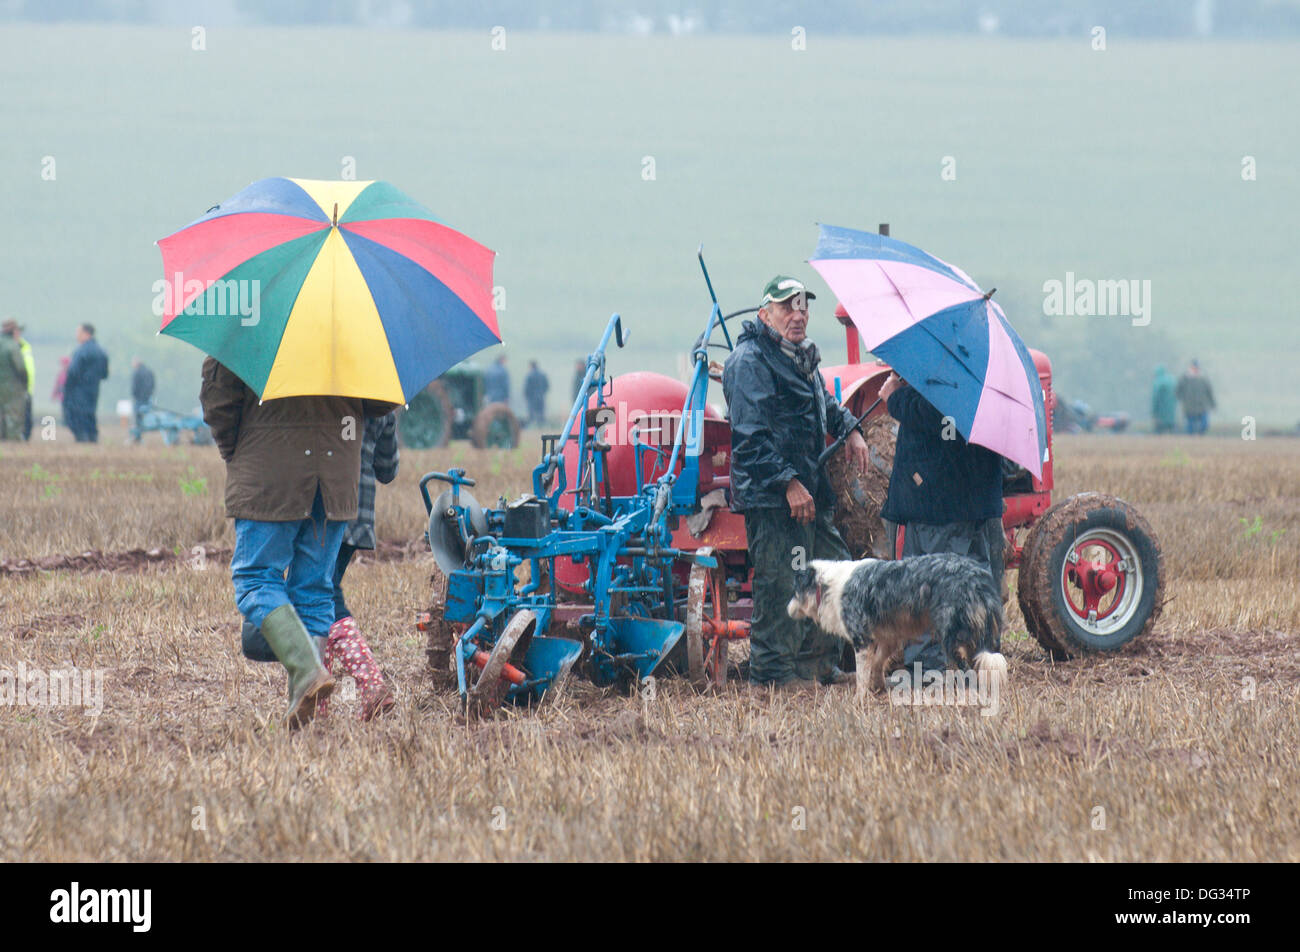 Llanwarne, Herefordshire, UK. 13th October 2013. Despite the rain stoicism and competitive spritit is evident on - Stock Image